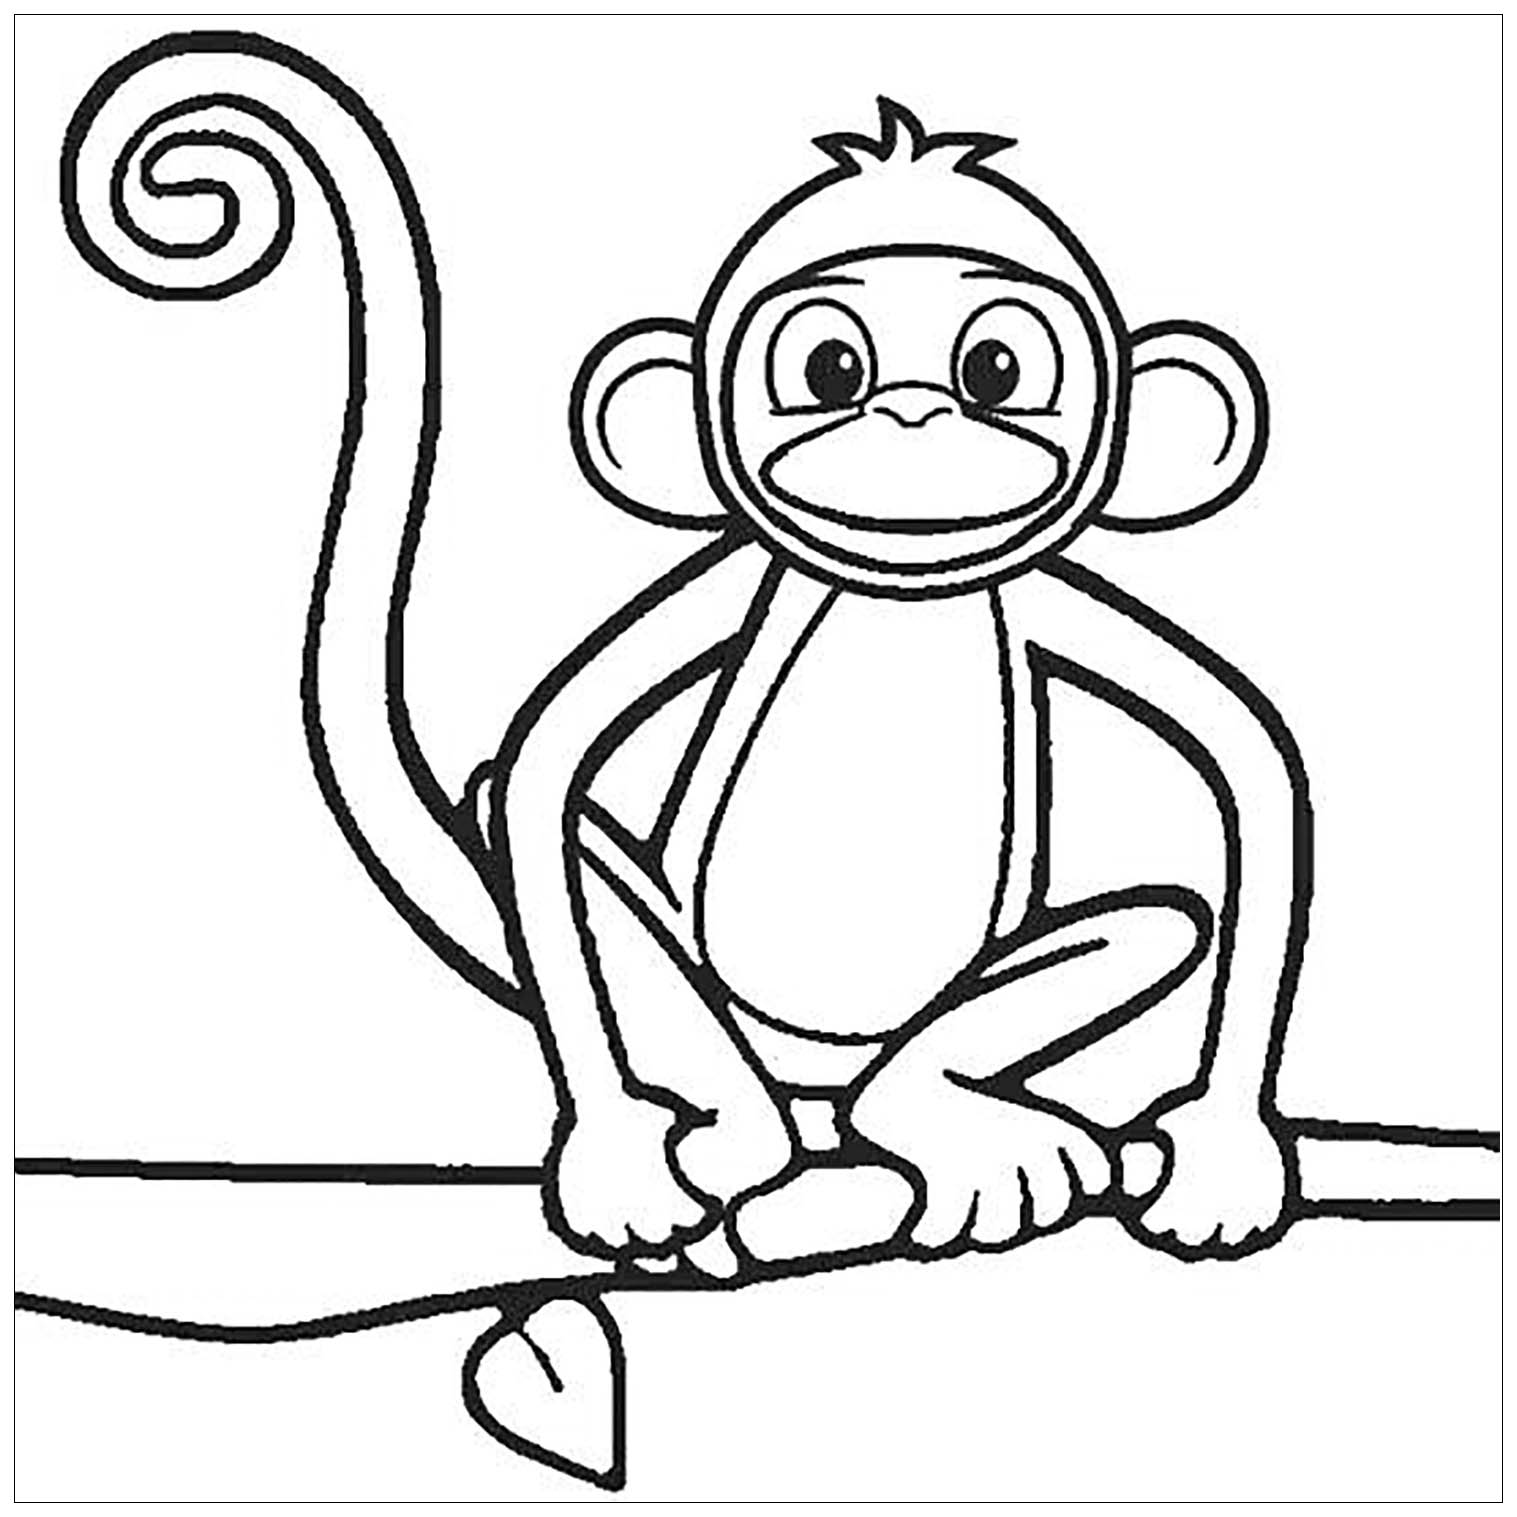 coloring pages of monkey cute coloring pages getcoloringpagescom of pages monkey coloring